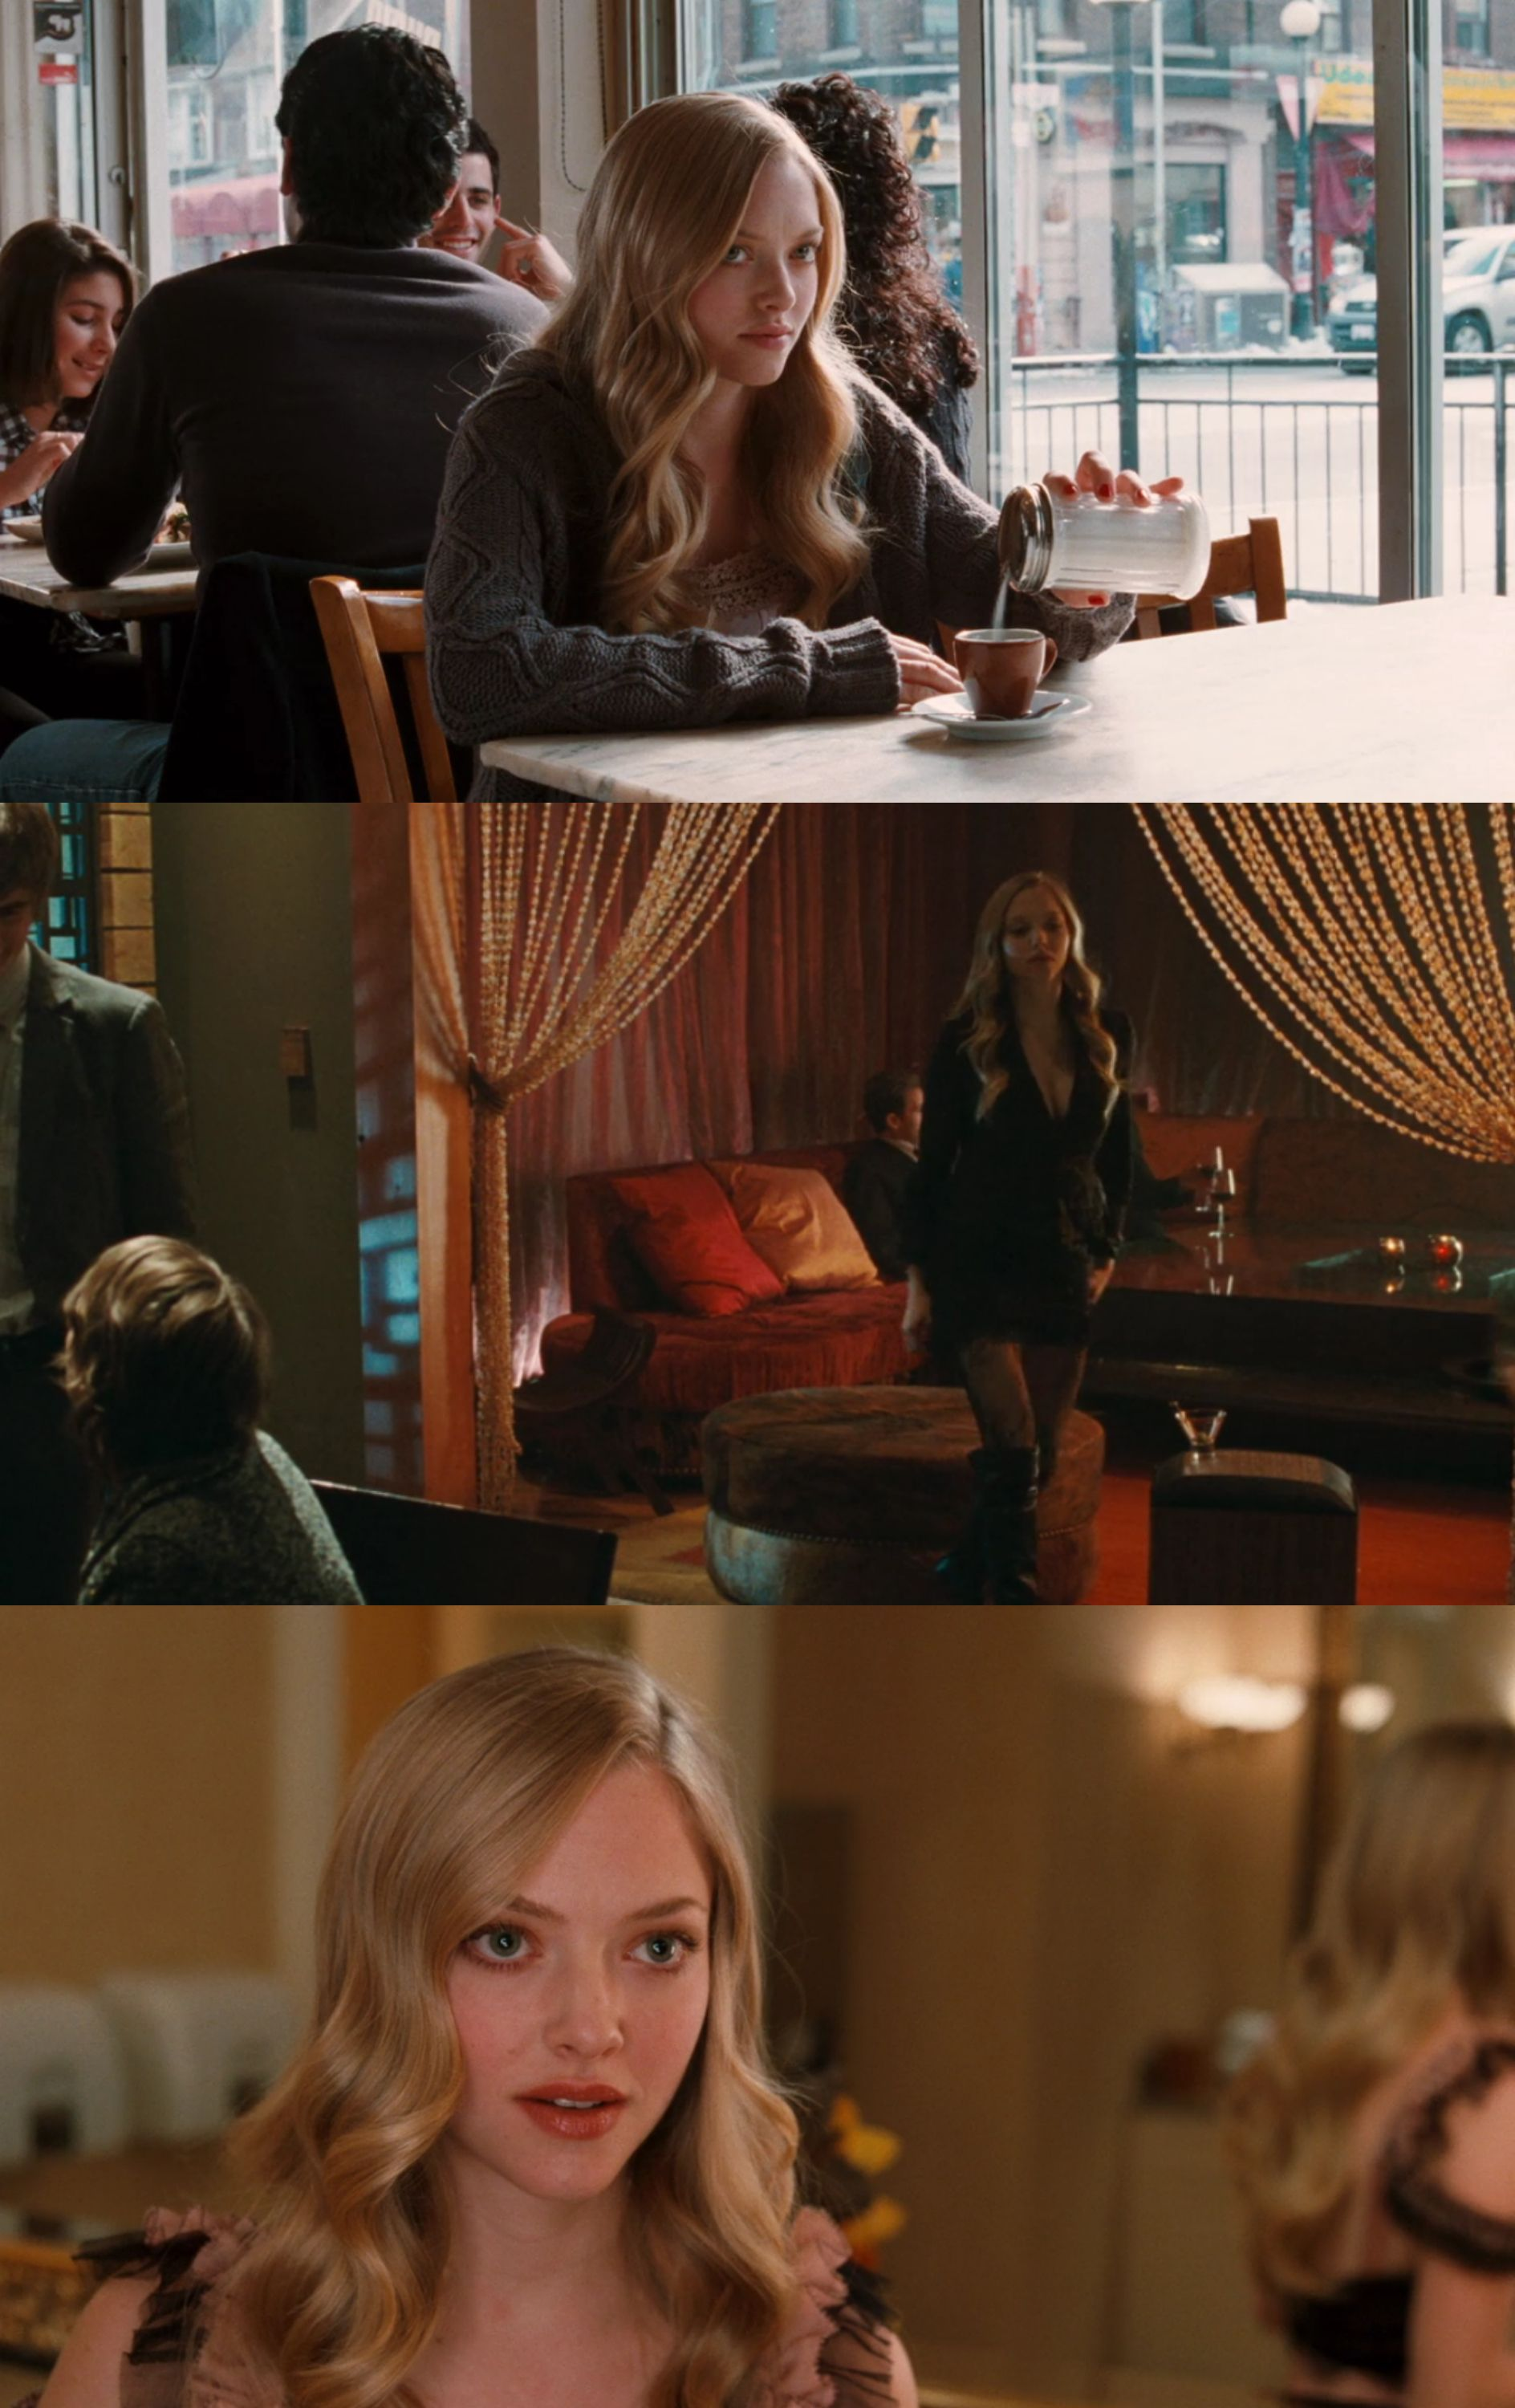 Amanda Seyfried Chloe Scene amanda seyfried, 'chloe' (2009) | amanda seyfried movies